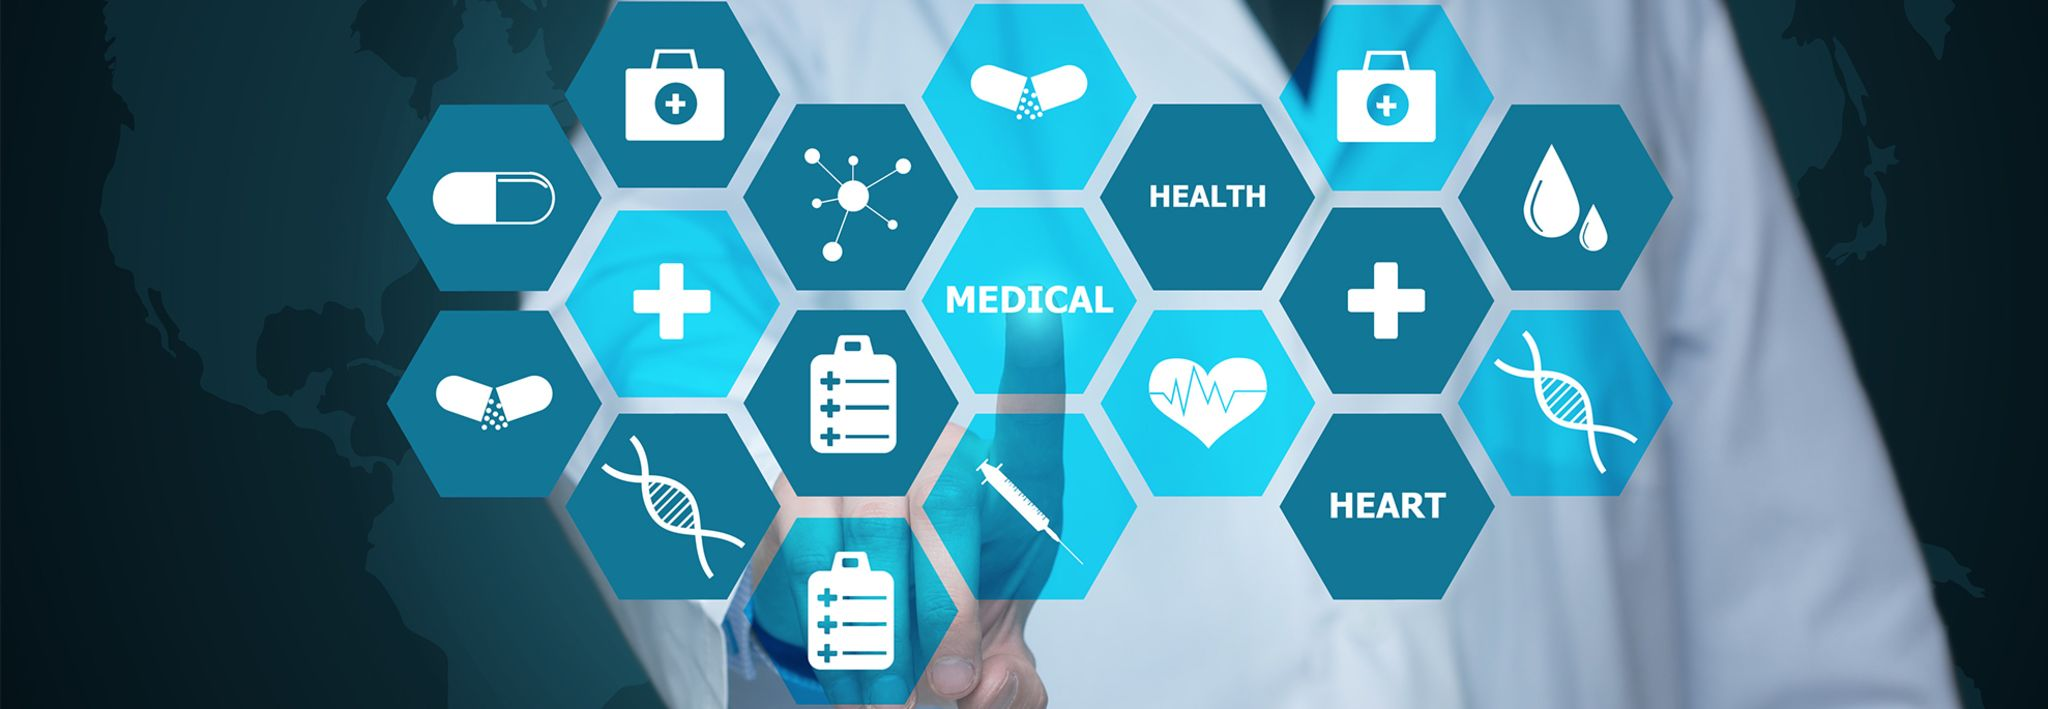 Healthcare administration icons include atoms, medication, and a first aid kit.